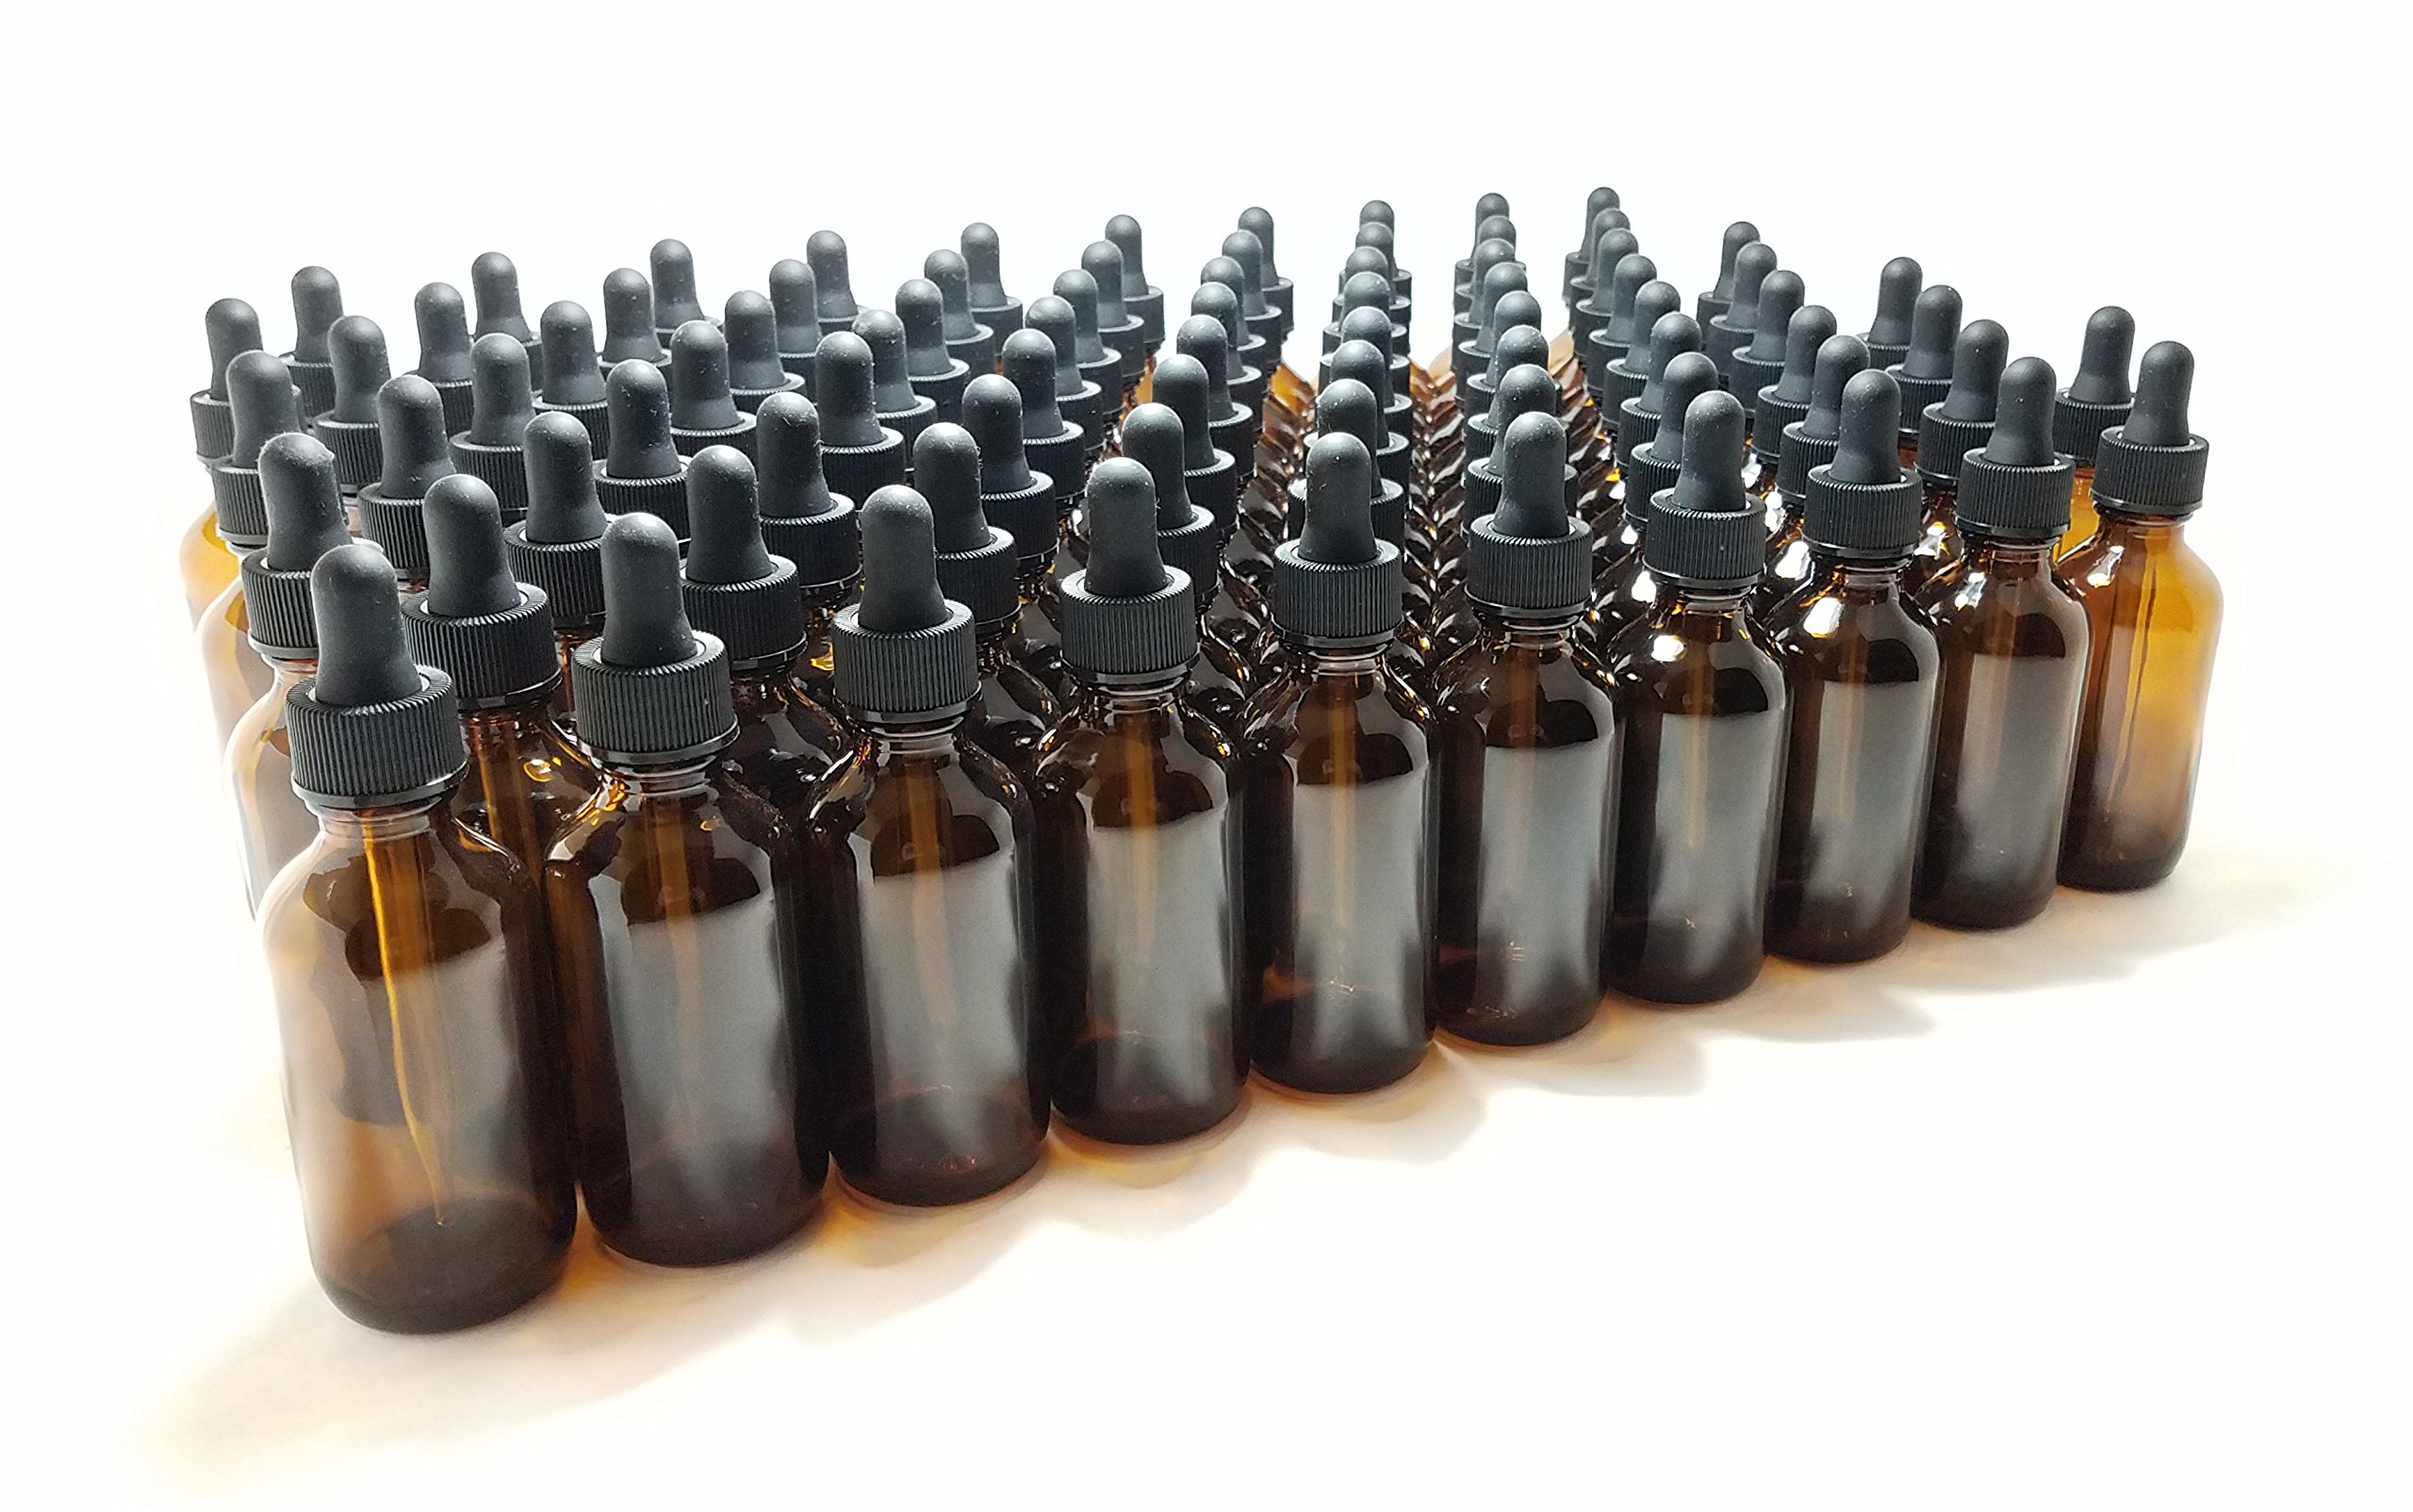 J&E Supplies 2oz Amber Glass Dropper Bottles (60mL) with Tapered Glass Droppers For Essential Oils - Pack of 80 - Wholesale - Bulk by J&E Supplies